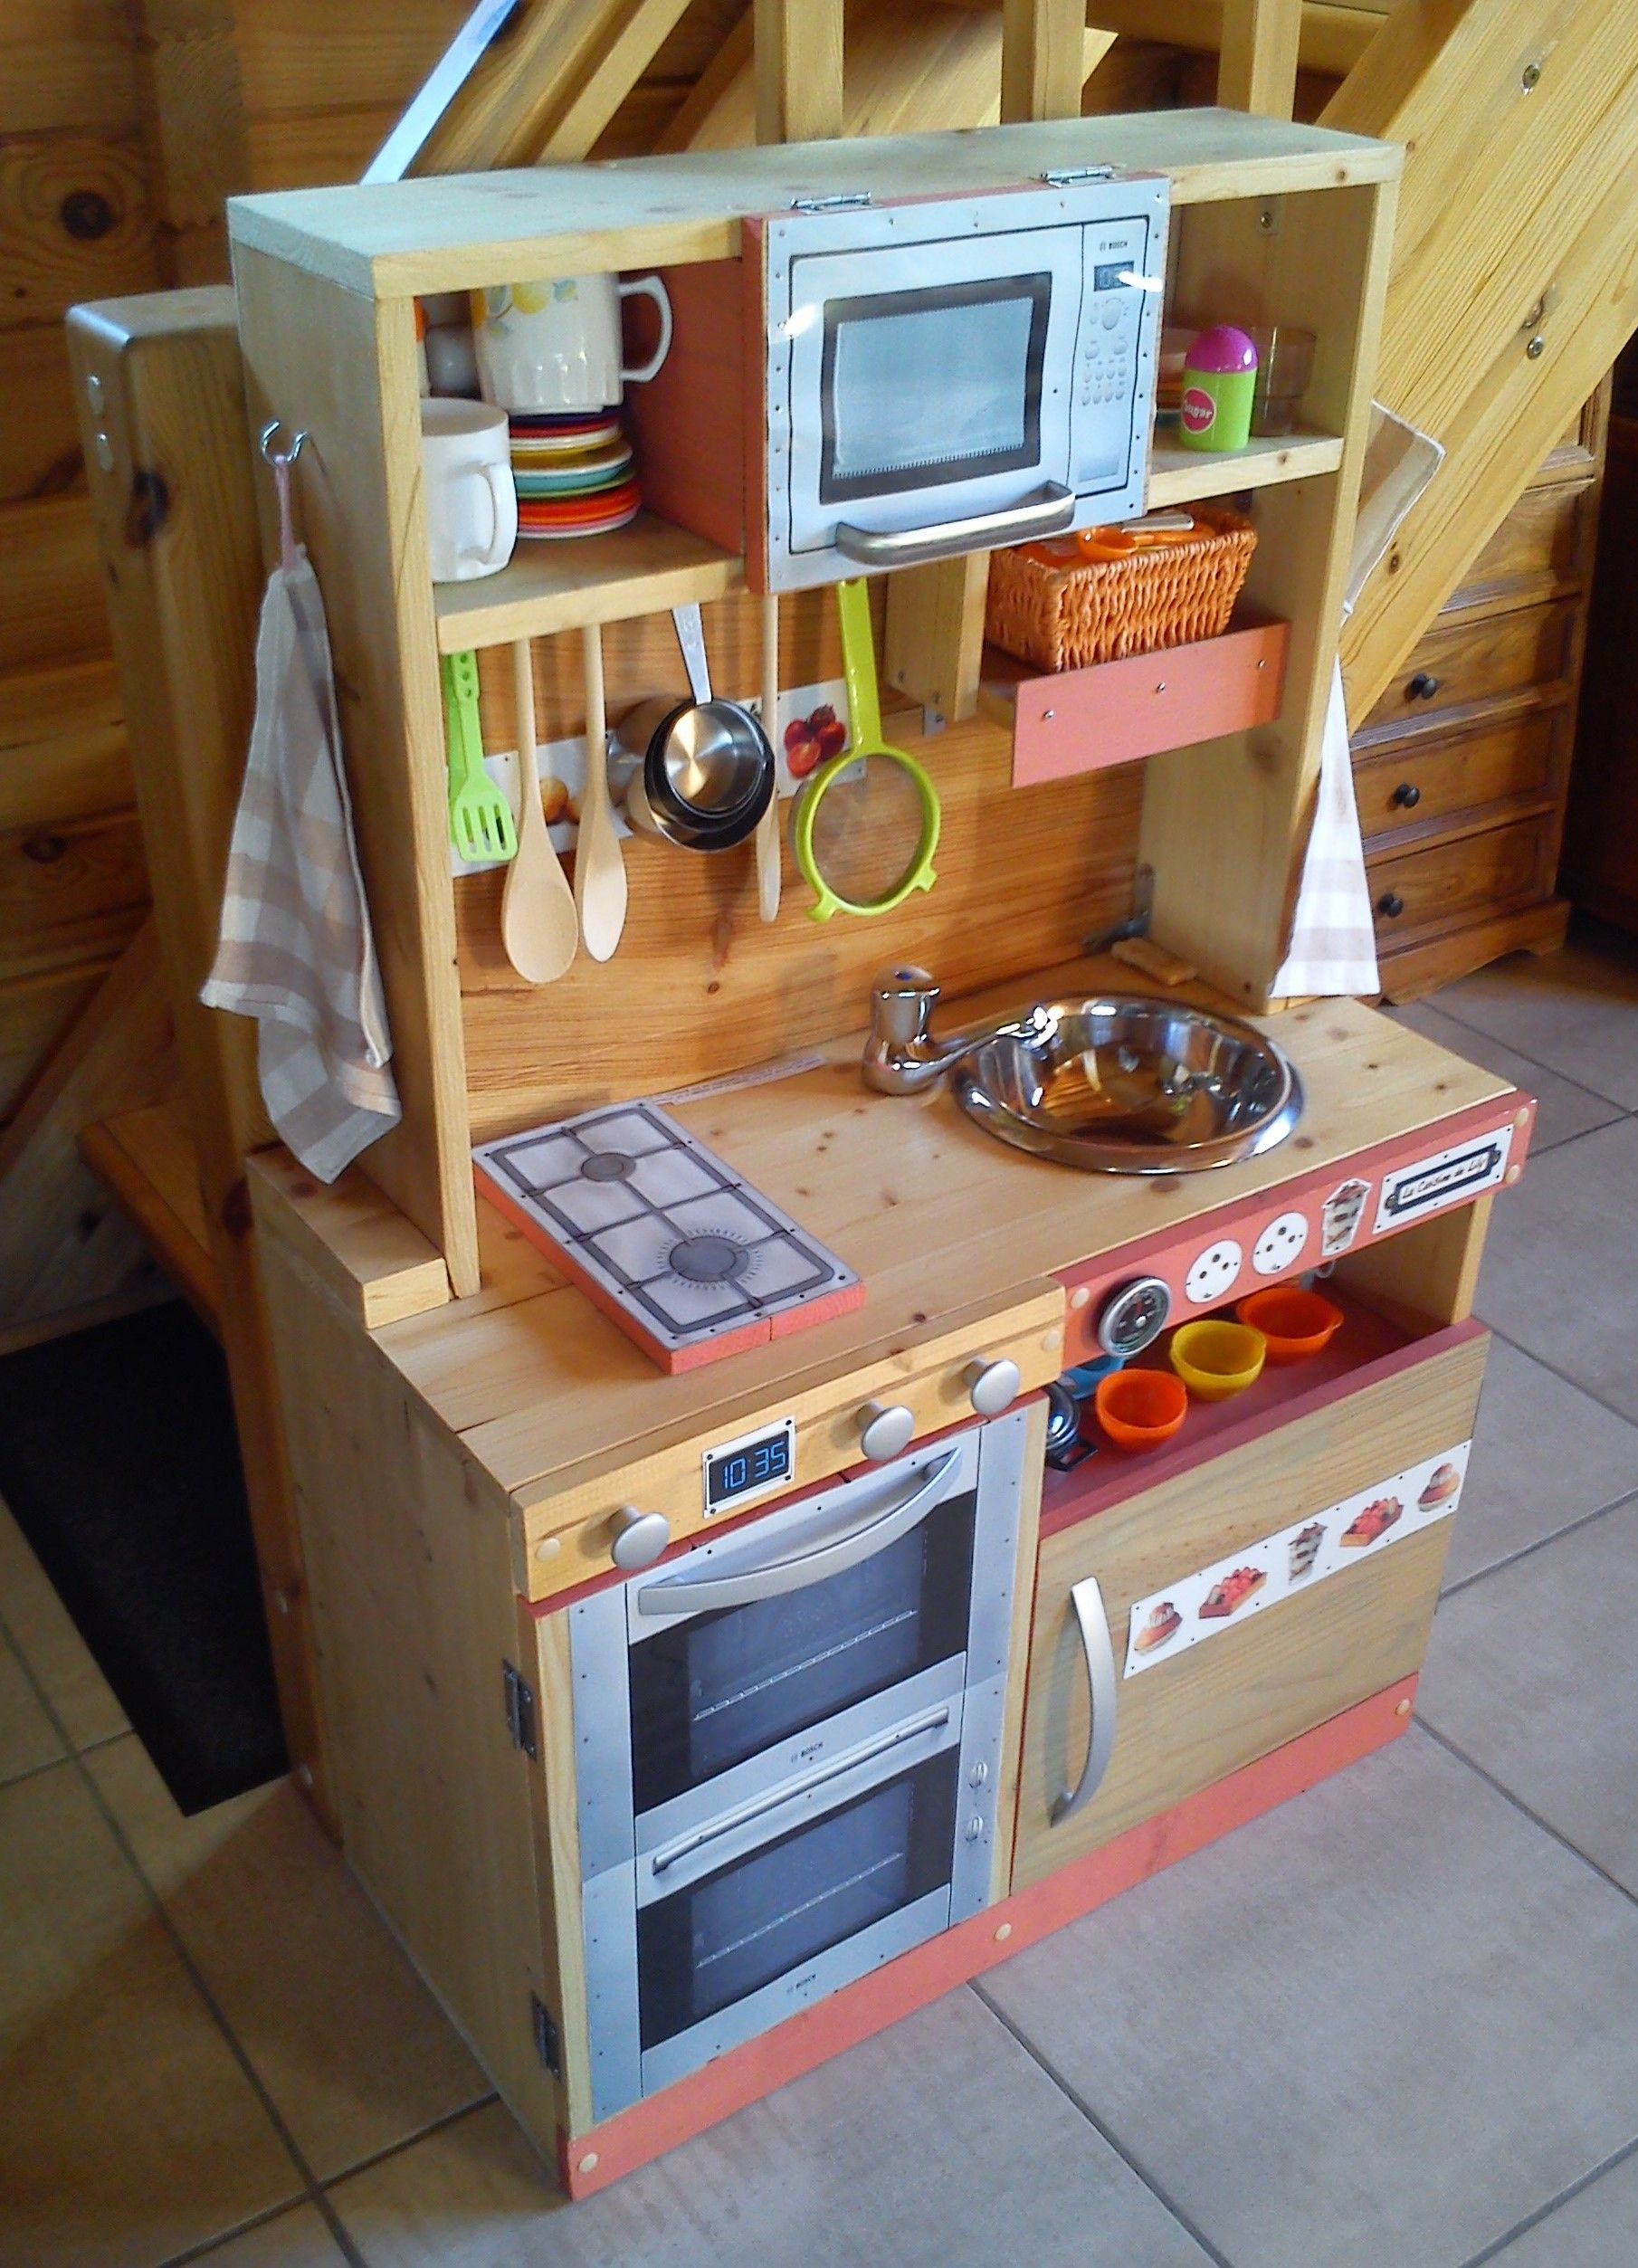 cuisini re en bois pour enfant fait maison diy. Black Bedroom Furniture Sets. Home Design Ideas